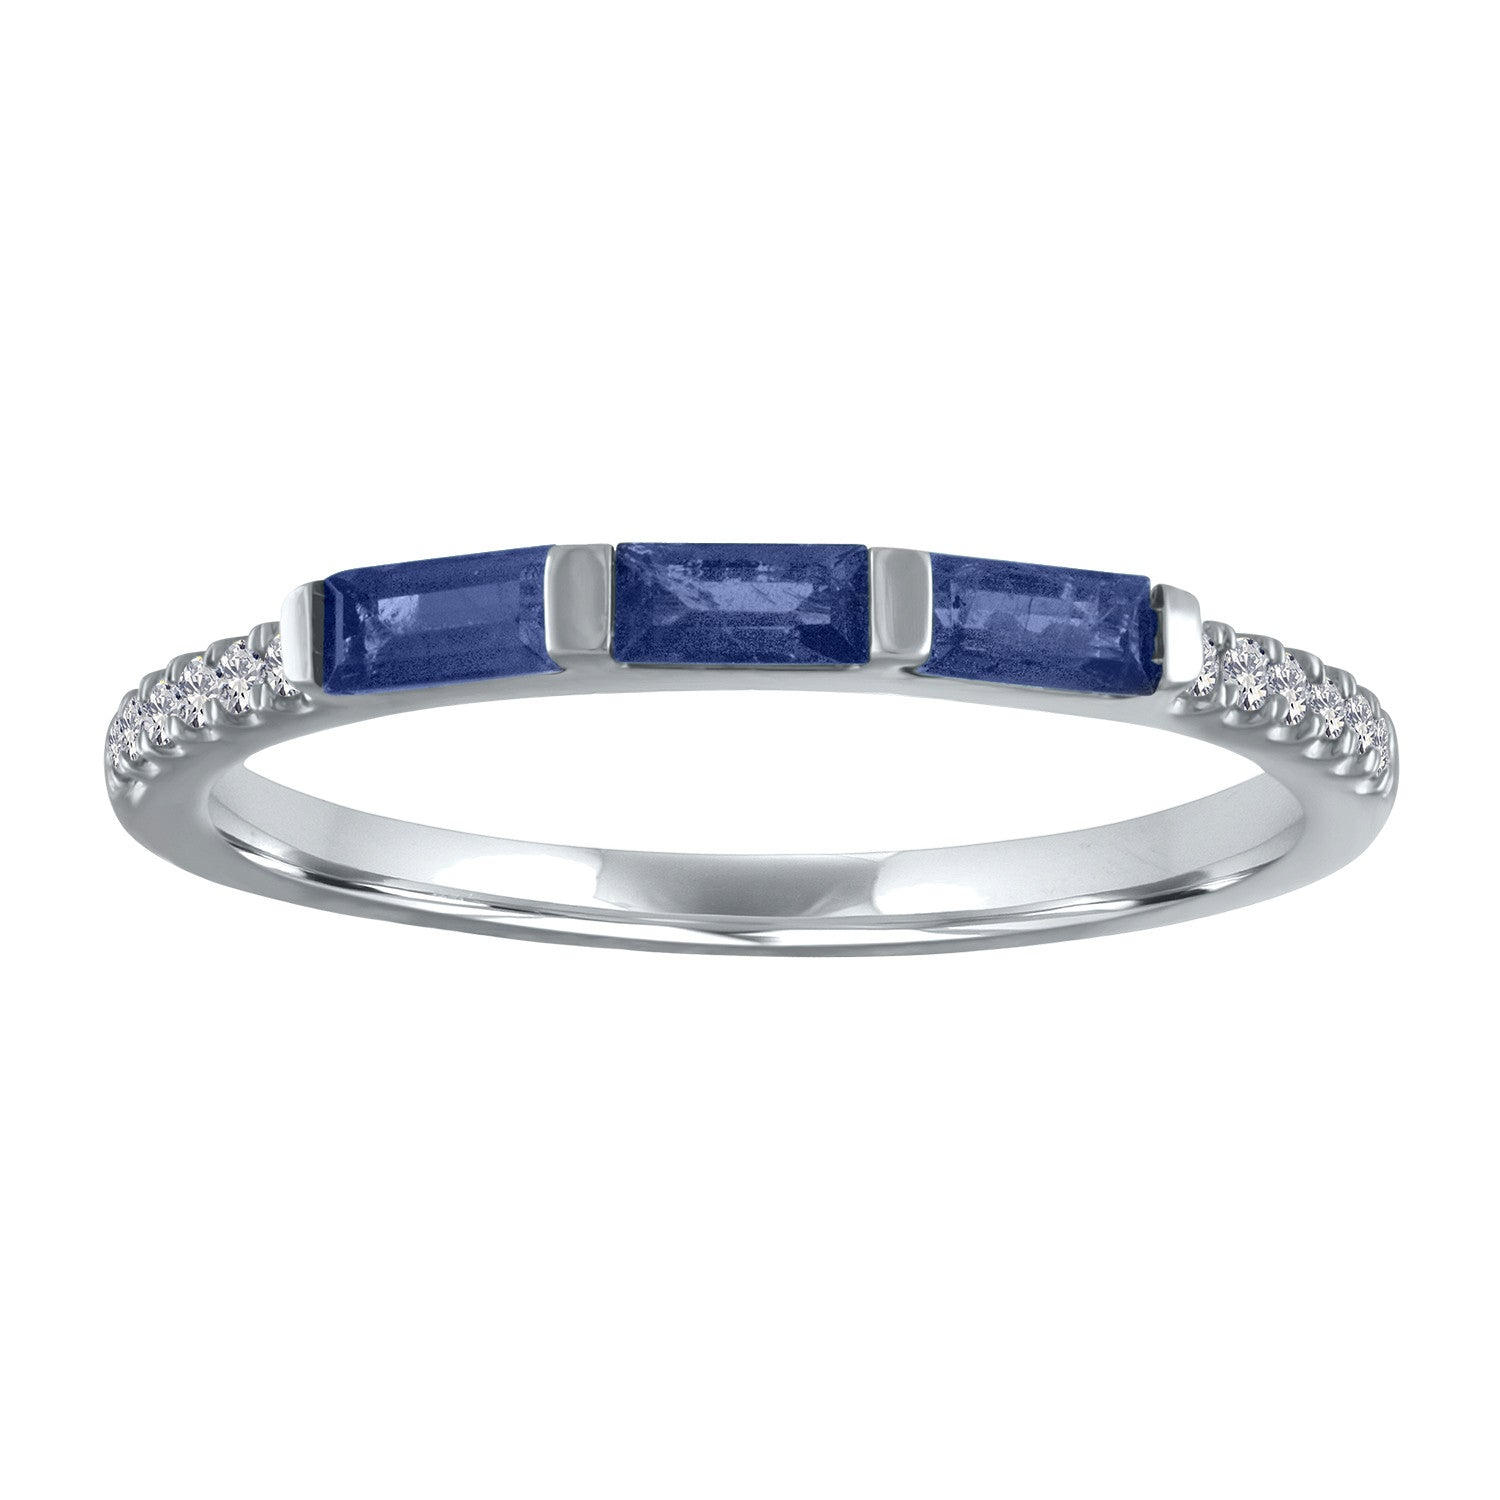 Julie ring with 3 sapphire baguettes